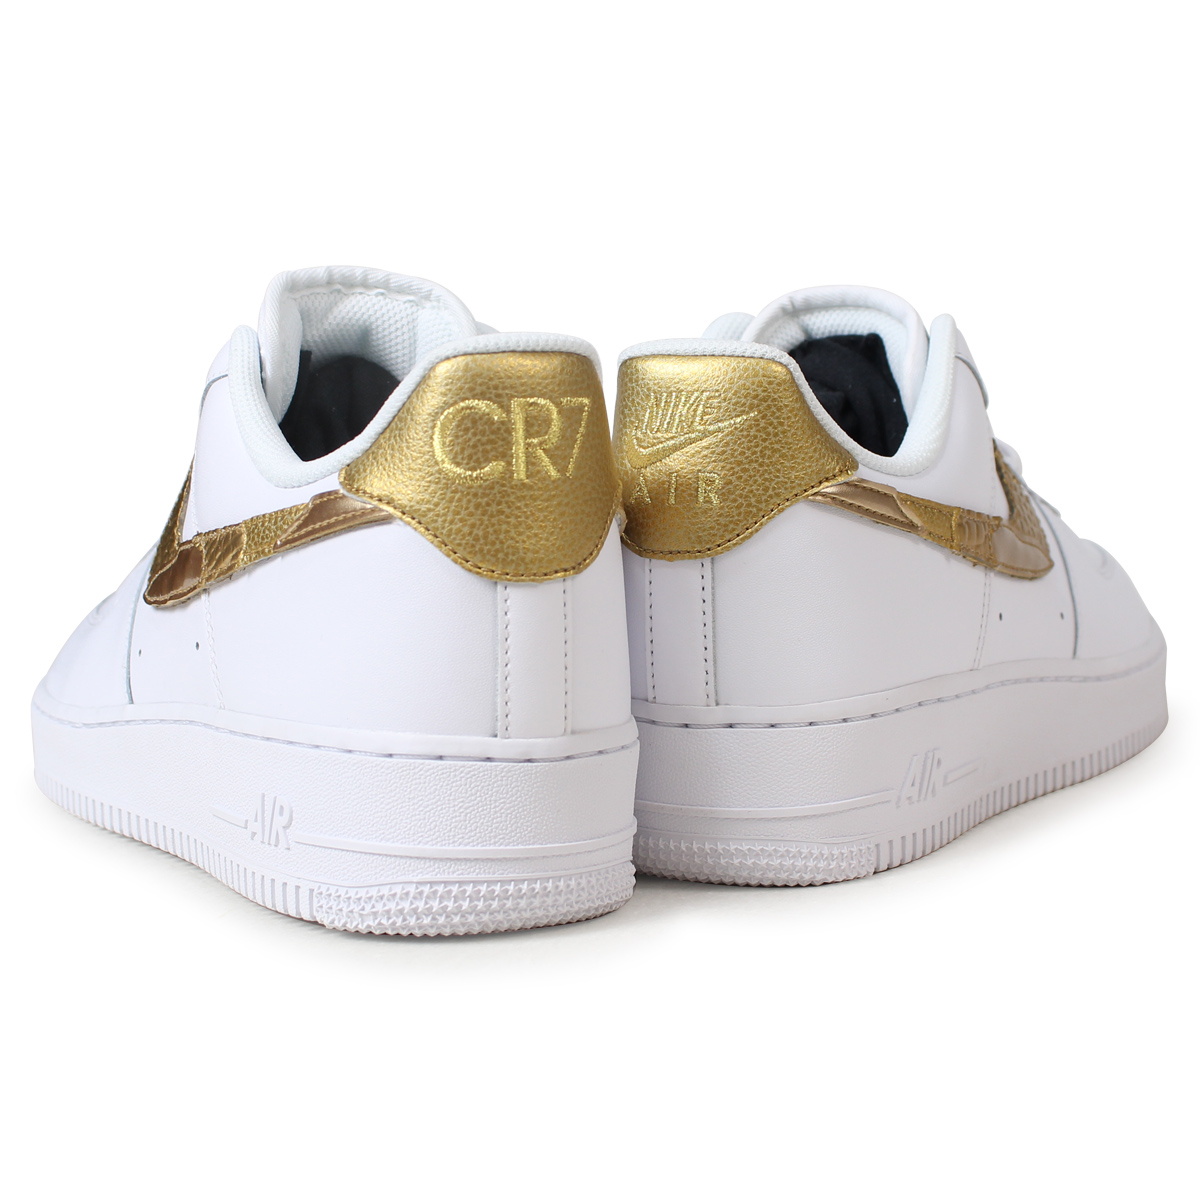 Air 100 1 Cr7 White185 07 Force Sneakers Nike Aq0666 Patchwork Golden Men Y7yfgmIb6v